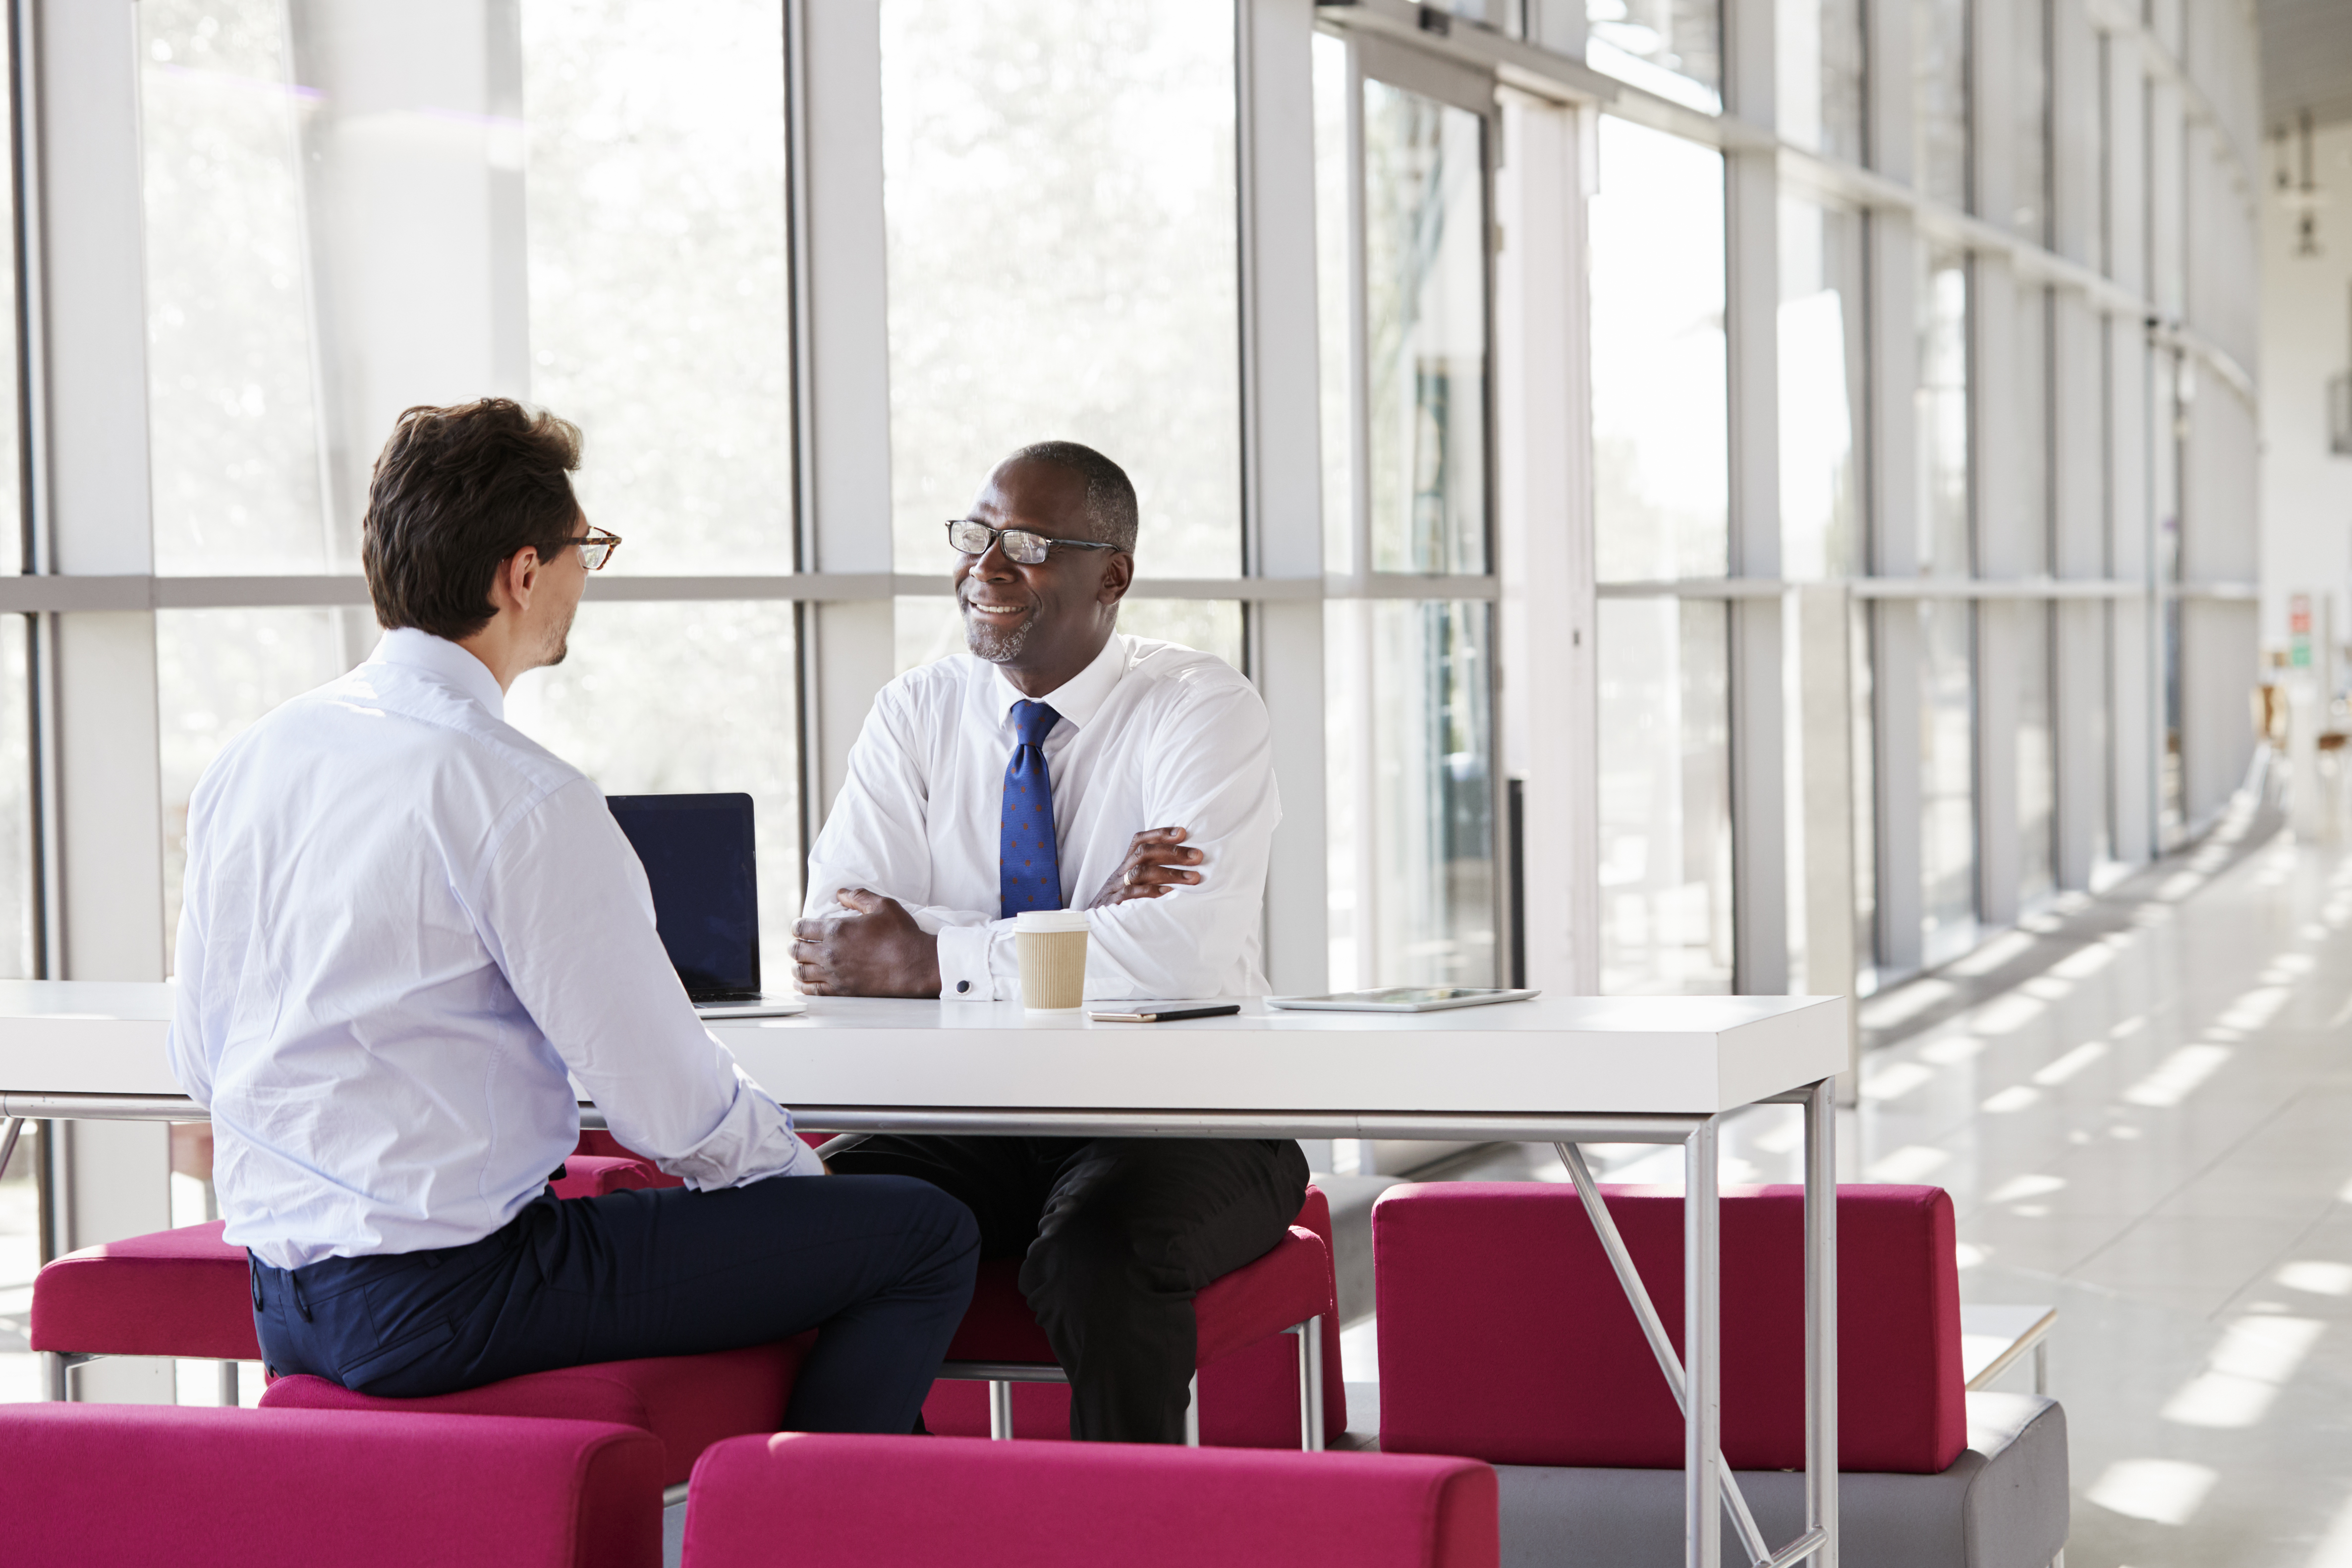 two-businessmen-talk-during-a-business-meeting-P4XYSBK